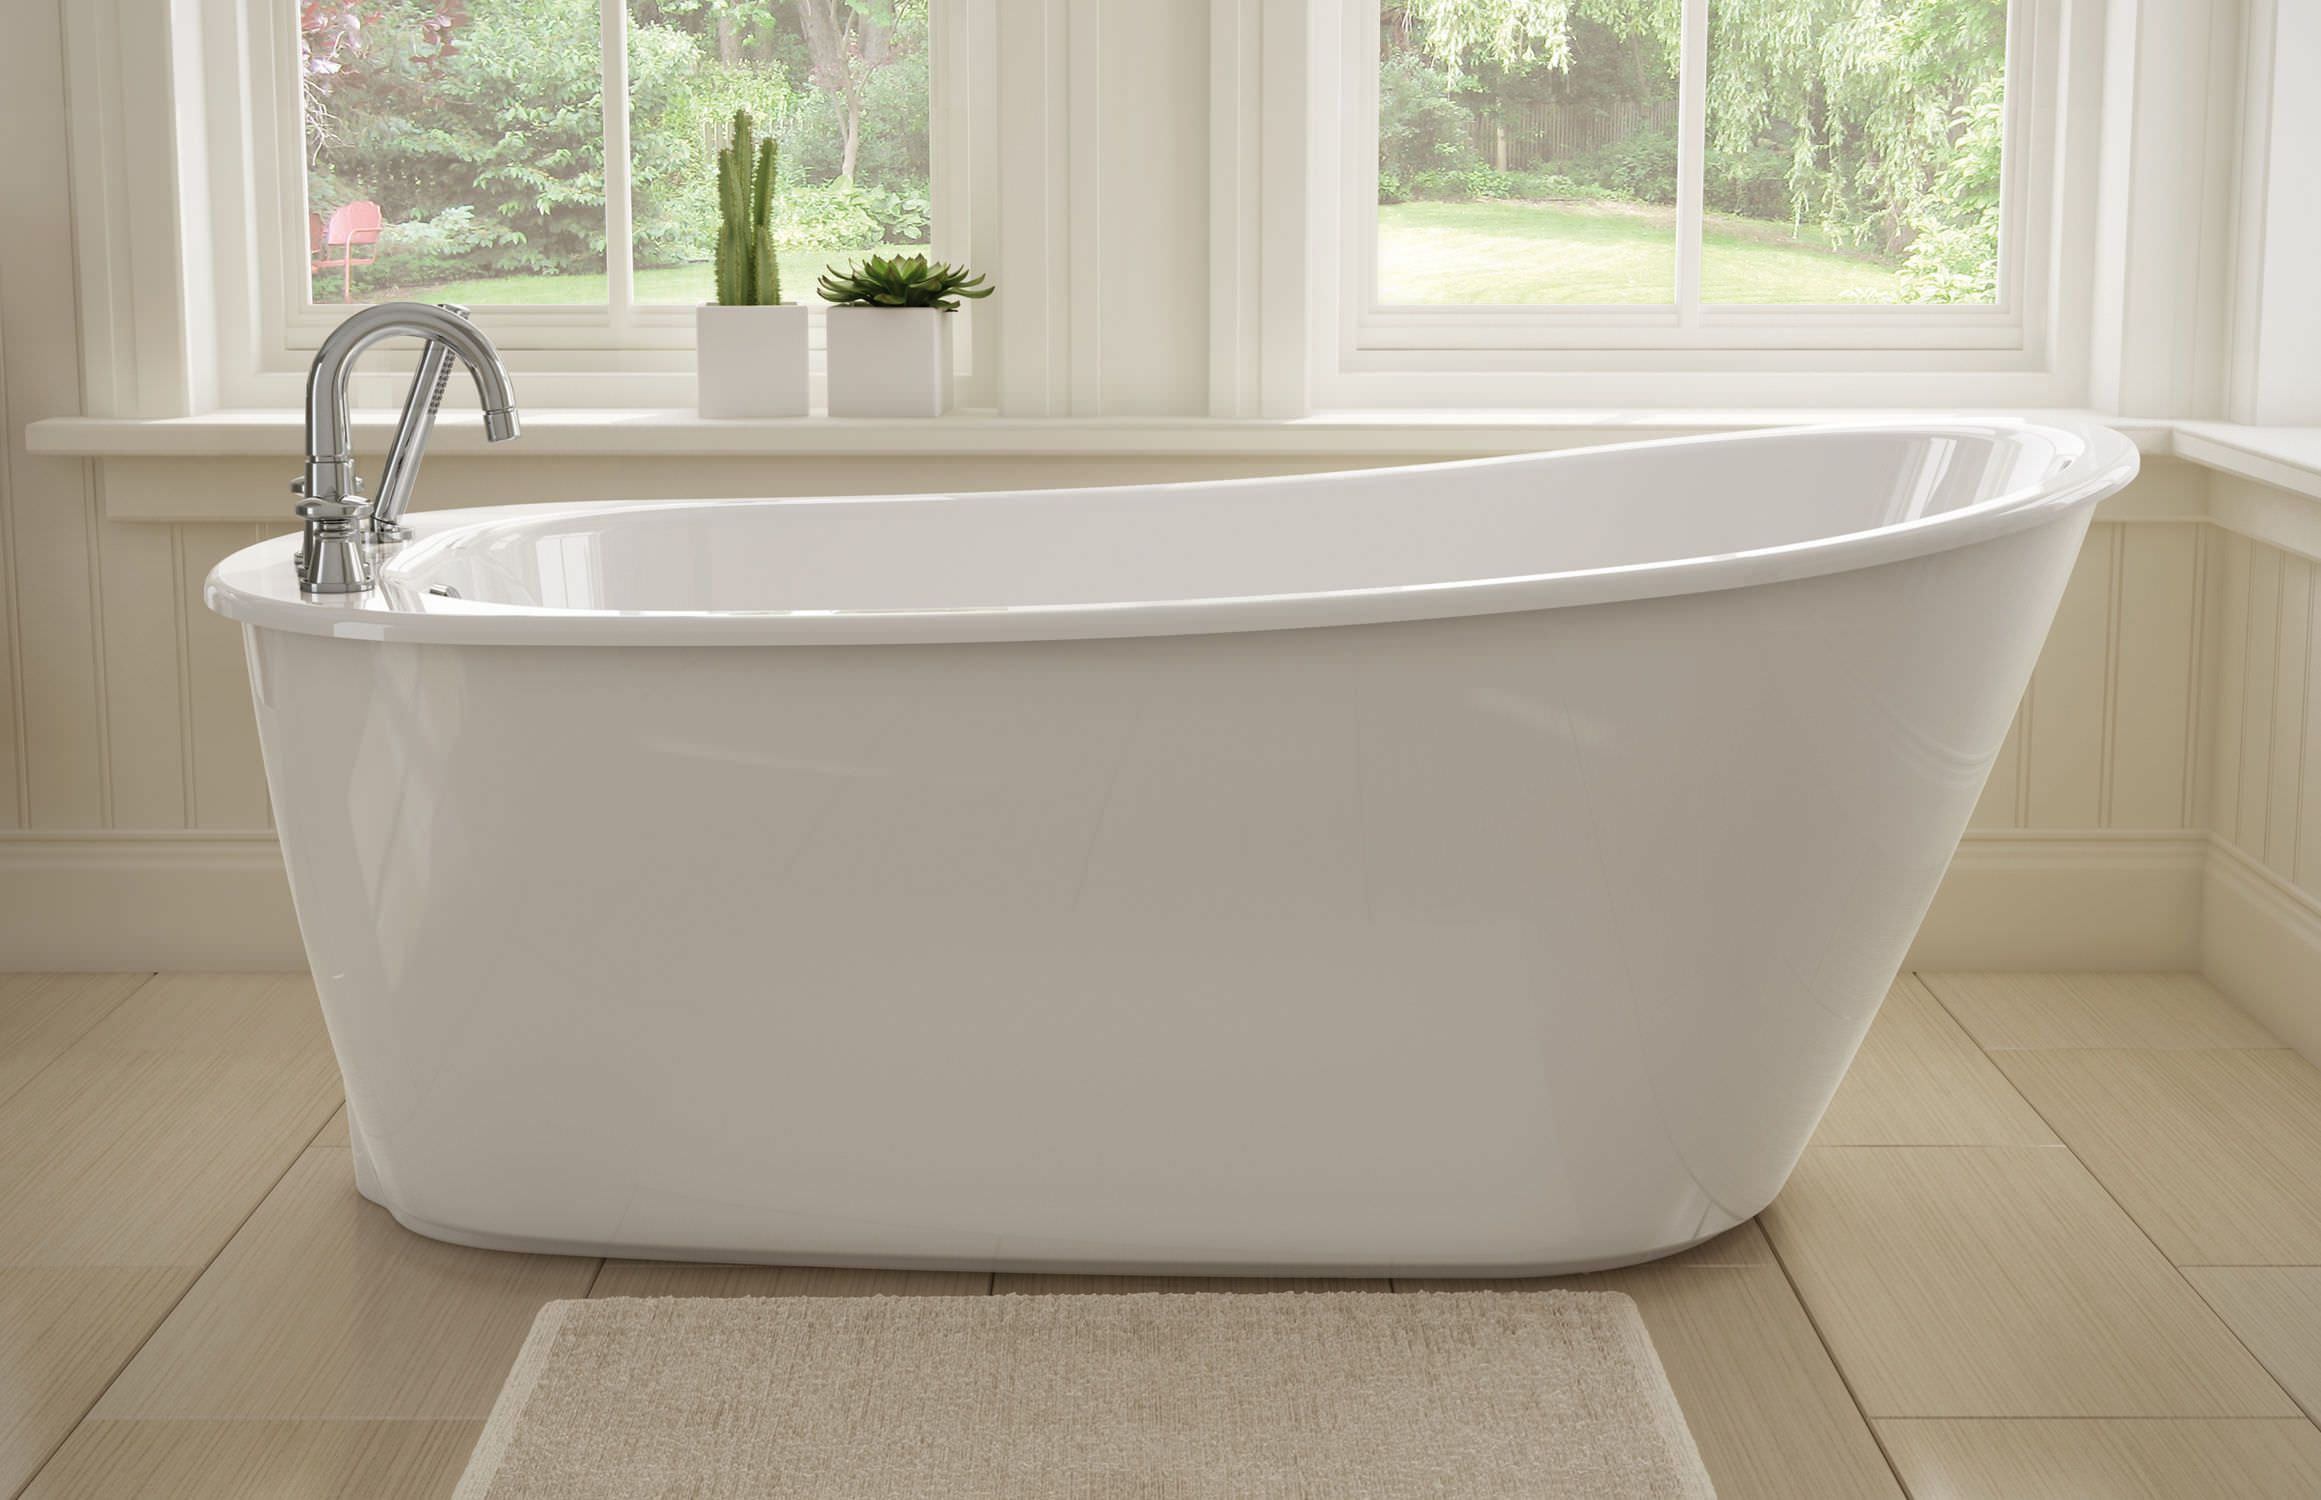 Freestanding Tub With Deck Mount Faucet Free Standing Bath Tub